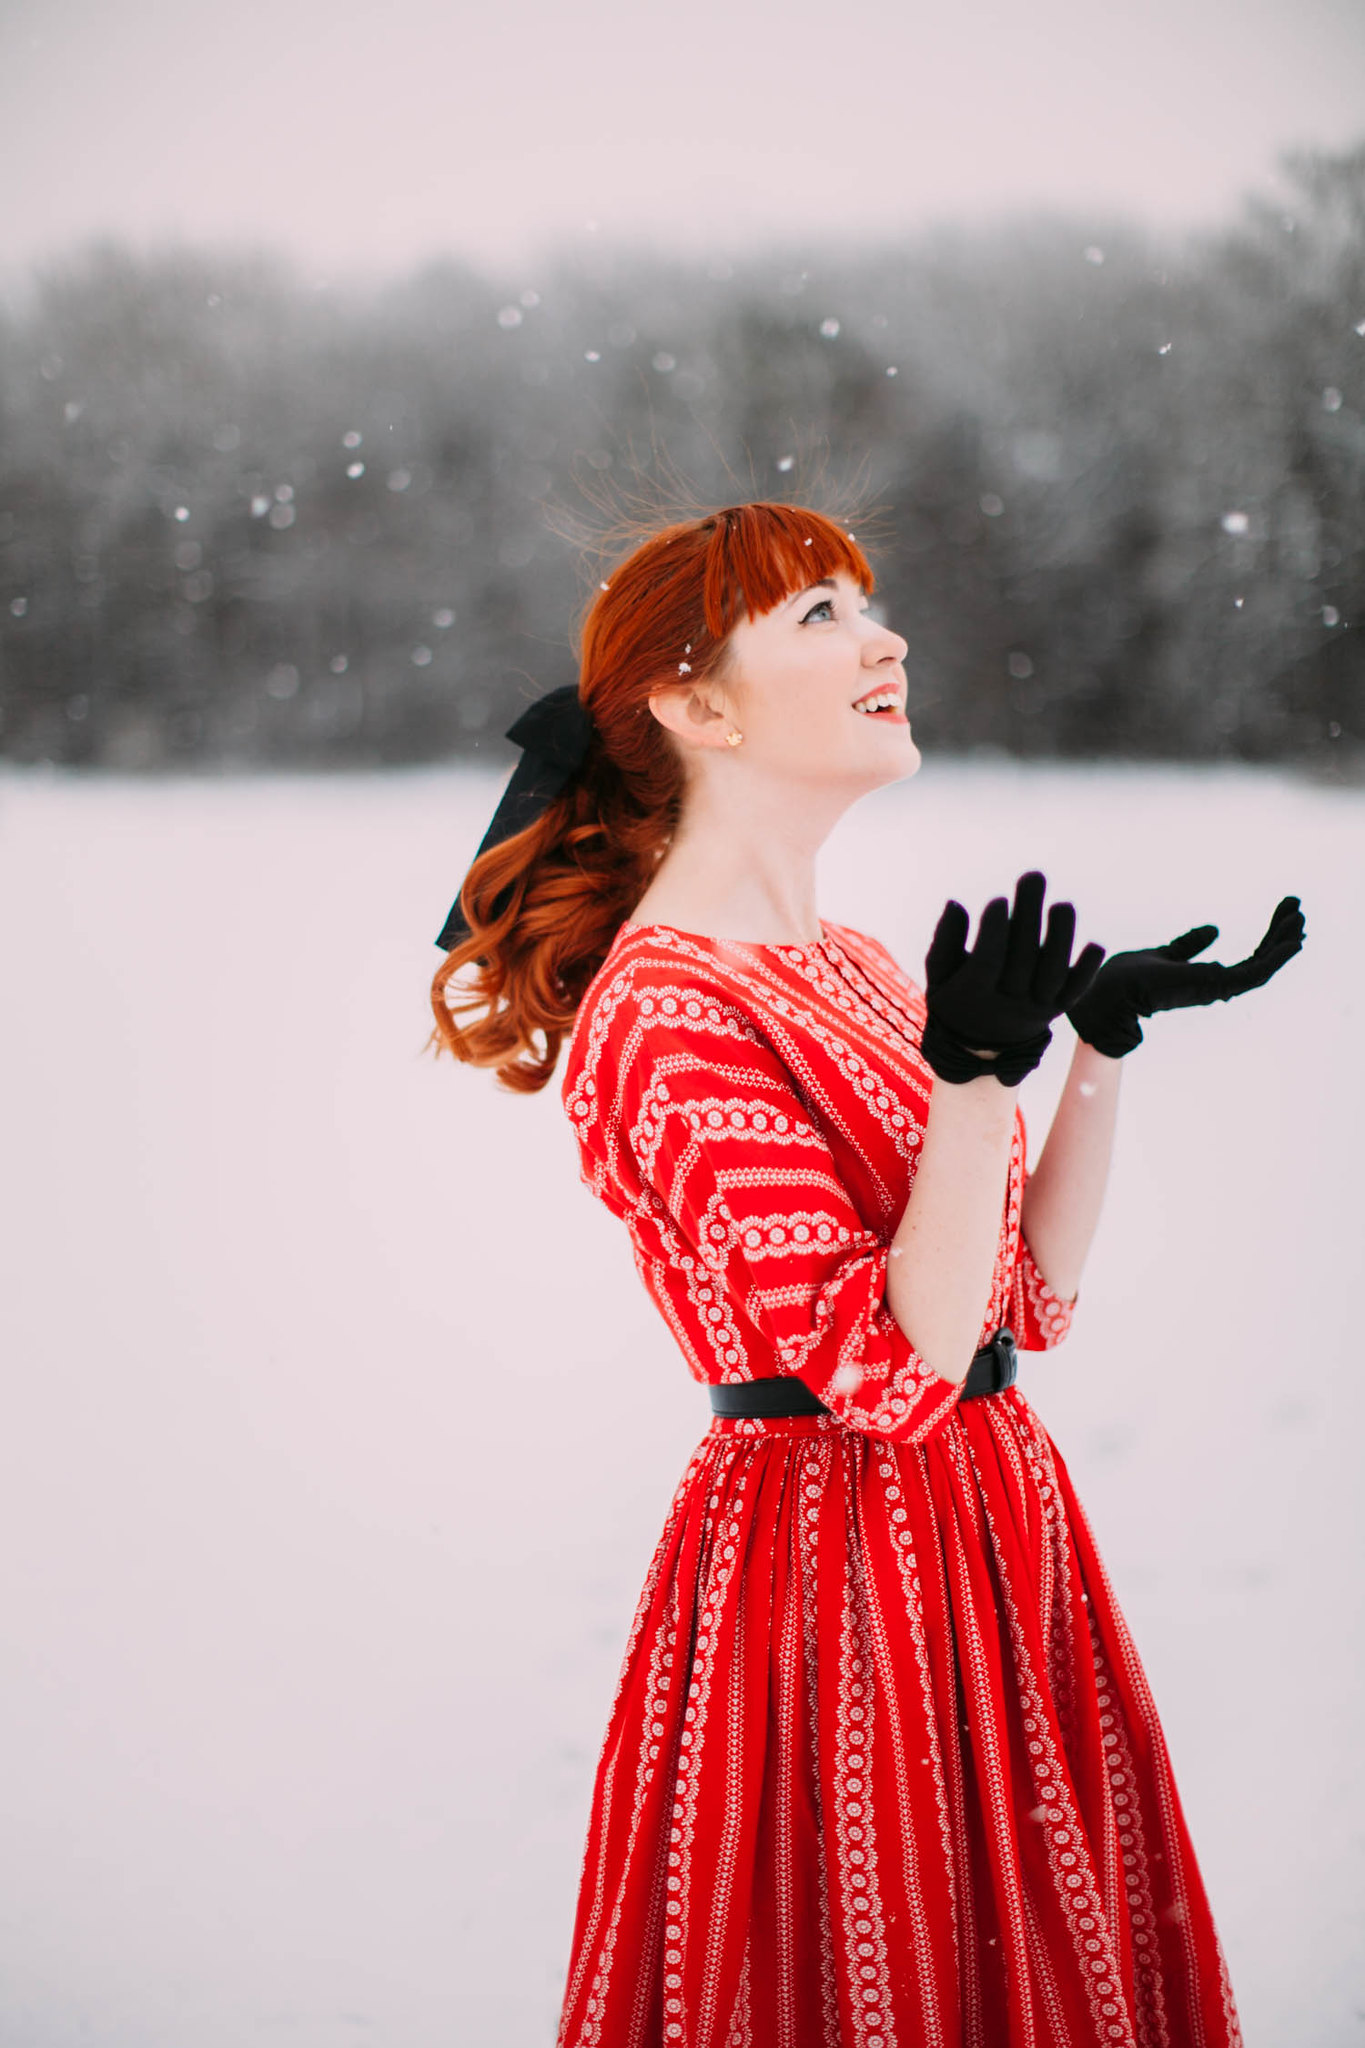 aclotheshorse snow red vintage dress happy holidays